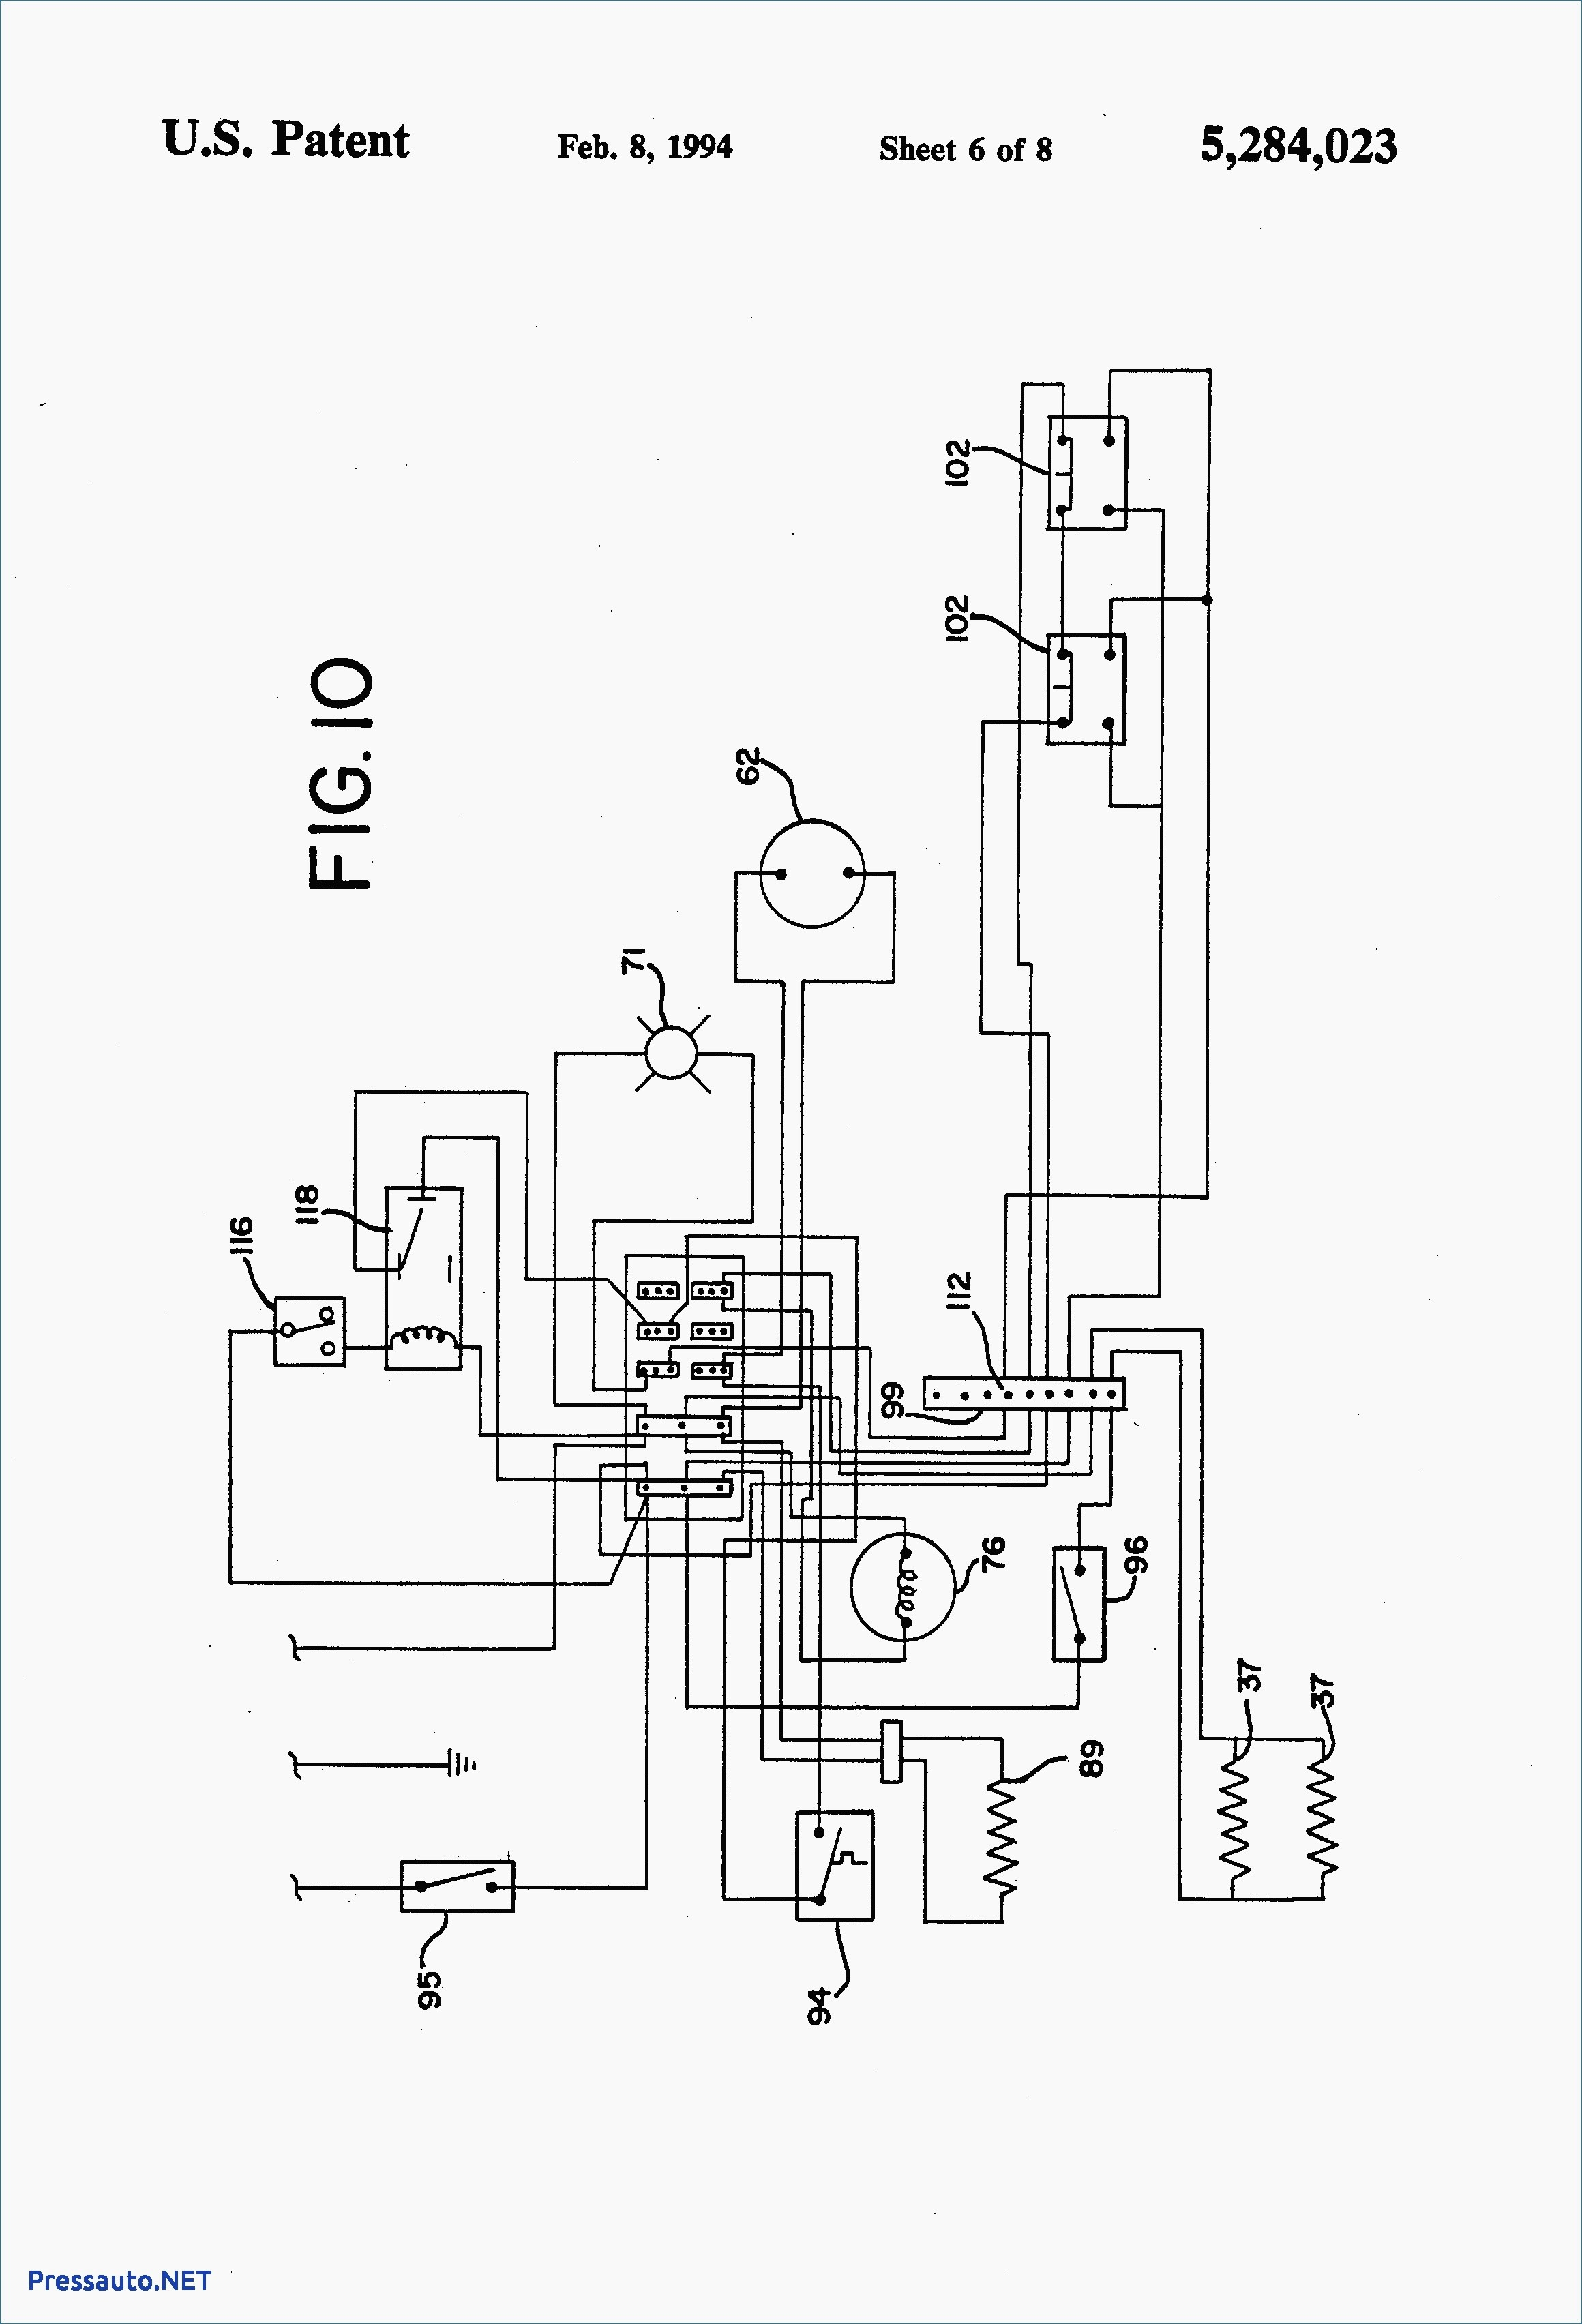 Lm Wiring Diagram For Yamaha Viking Download Diagram